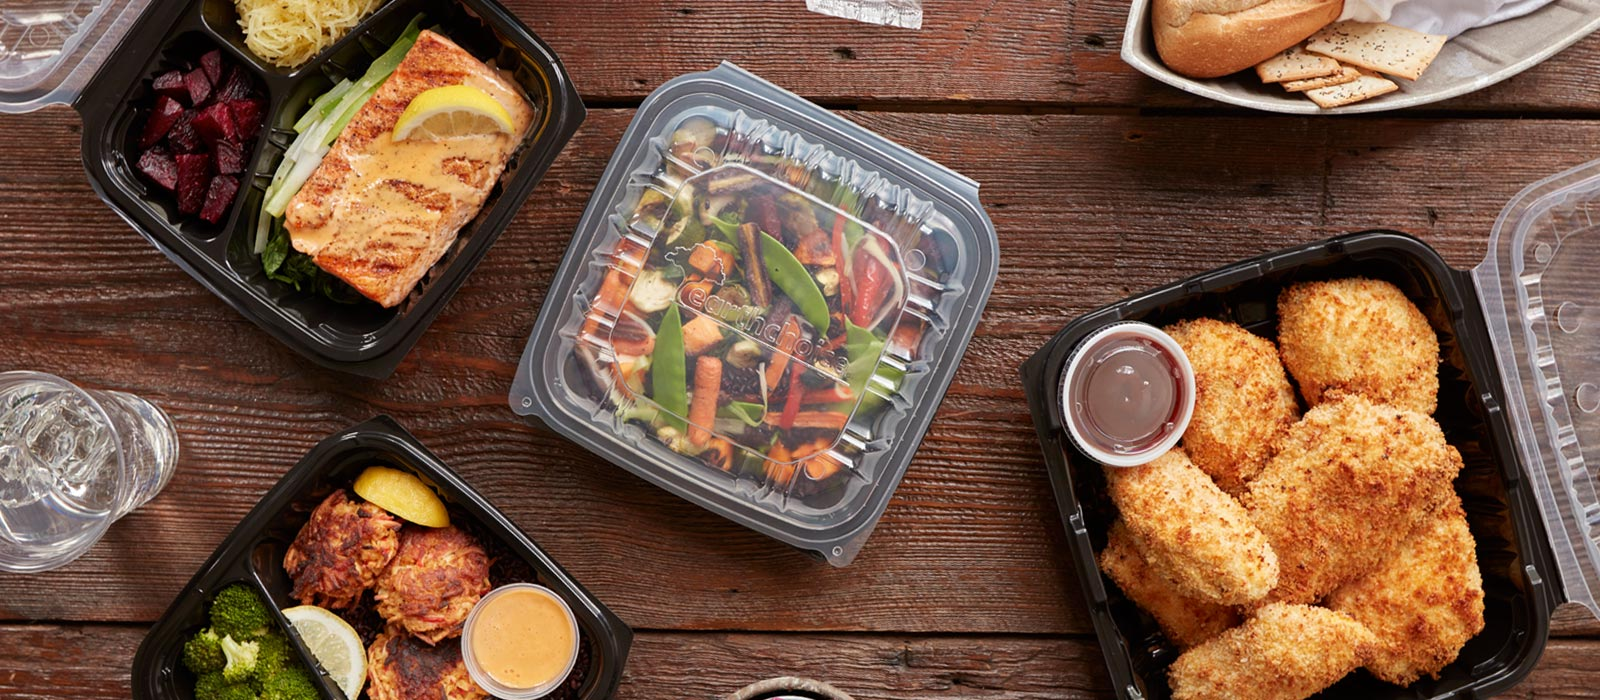 MEALMASTER MFPP CONTAINERS